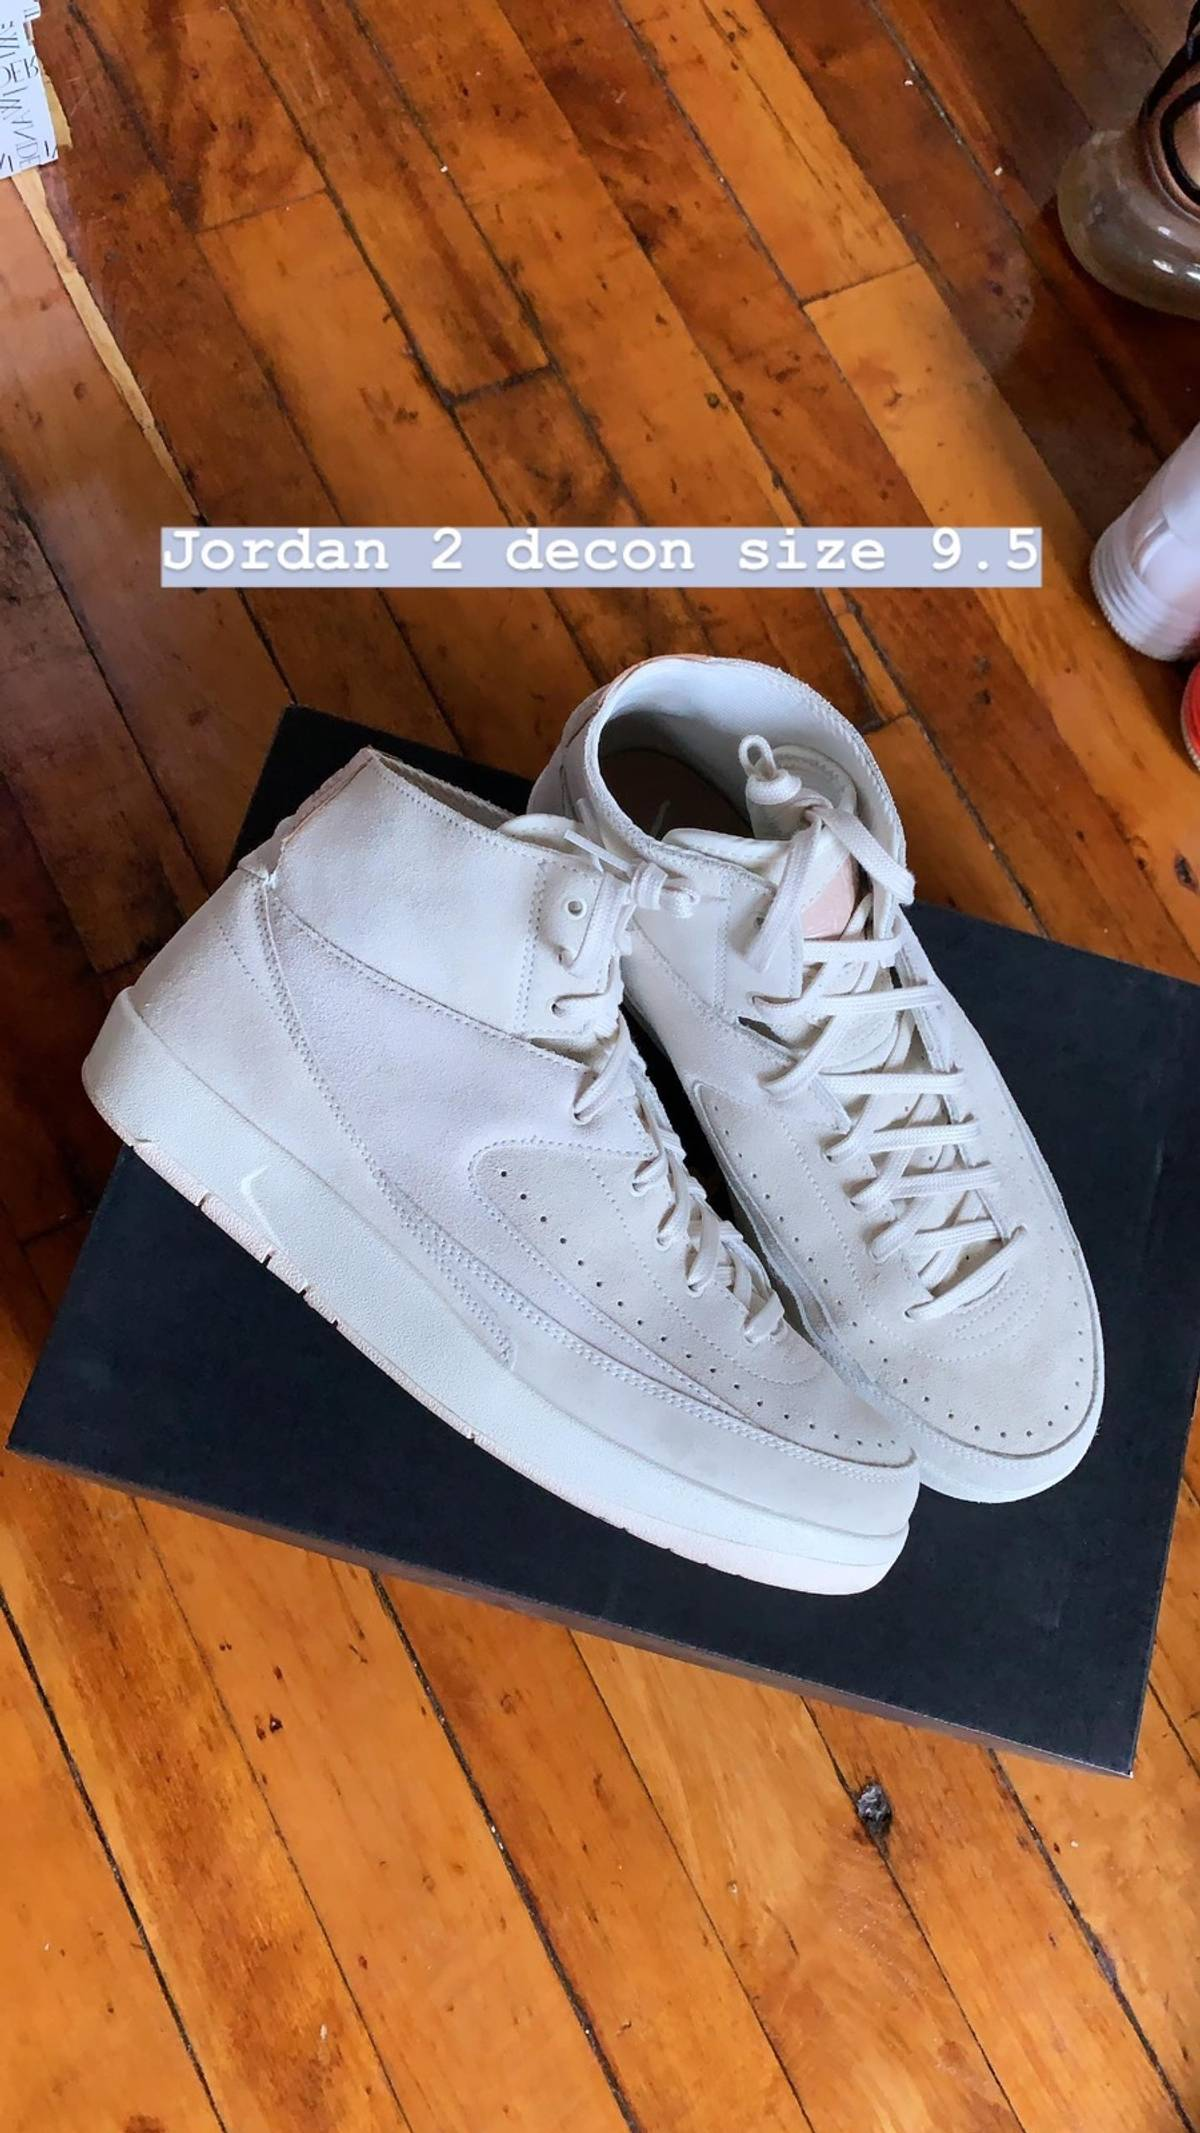 separation shoes ce6d3 76e18 Jordan Brand Air Jordan 2 Retro Deconstructed 'sail' Size 9.5 $81